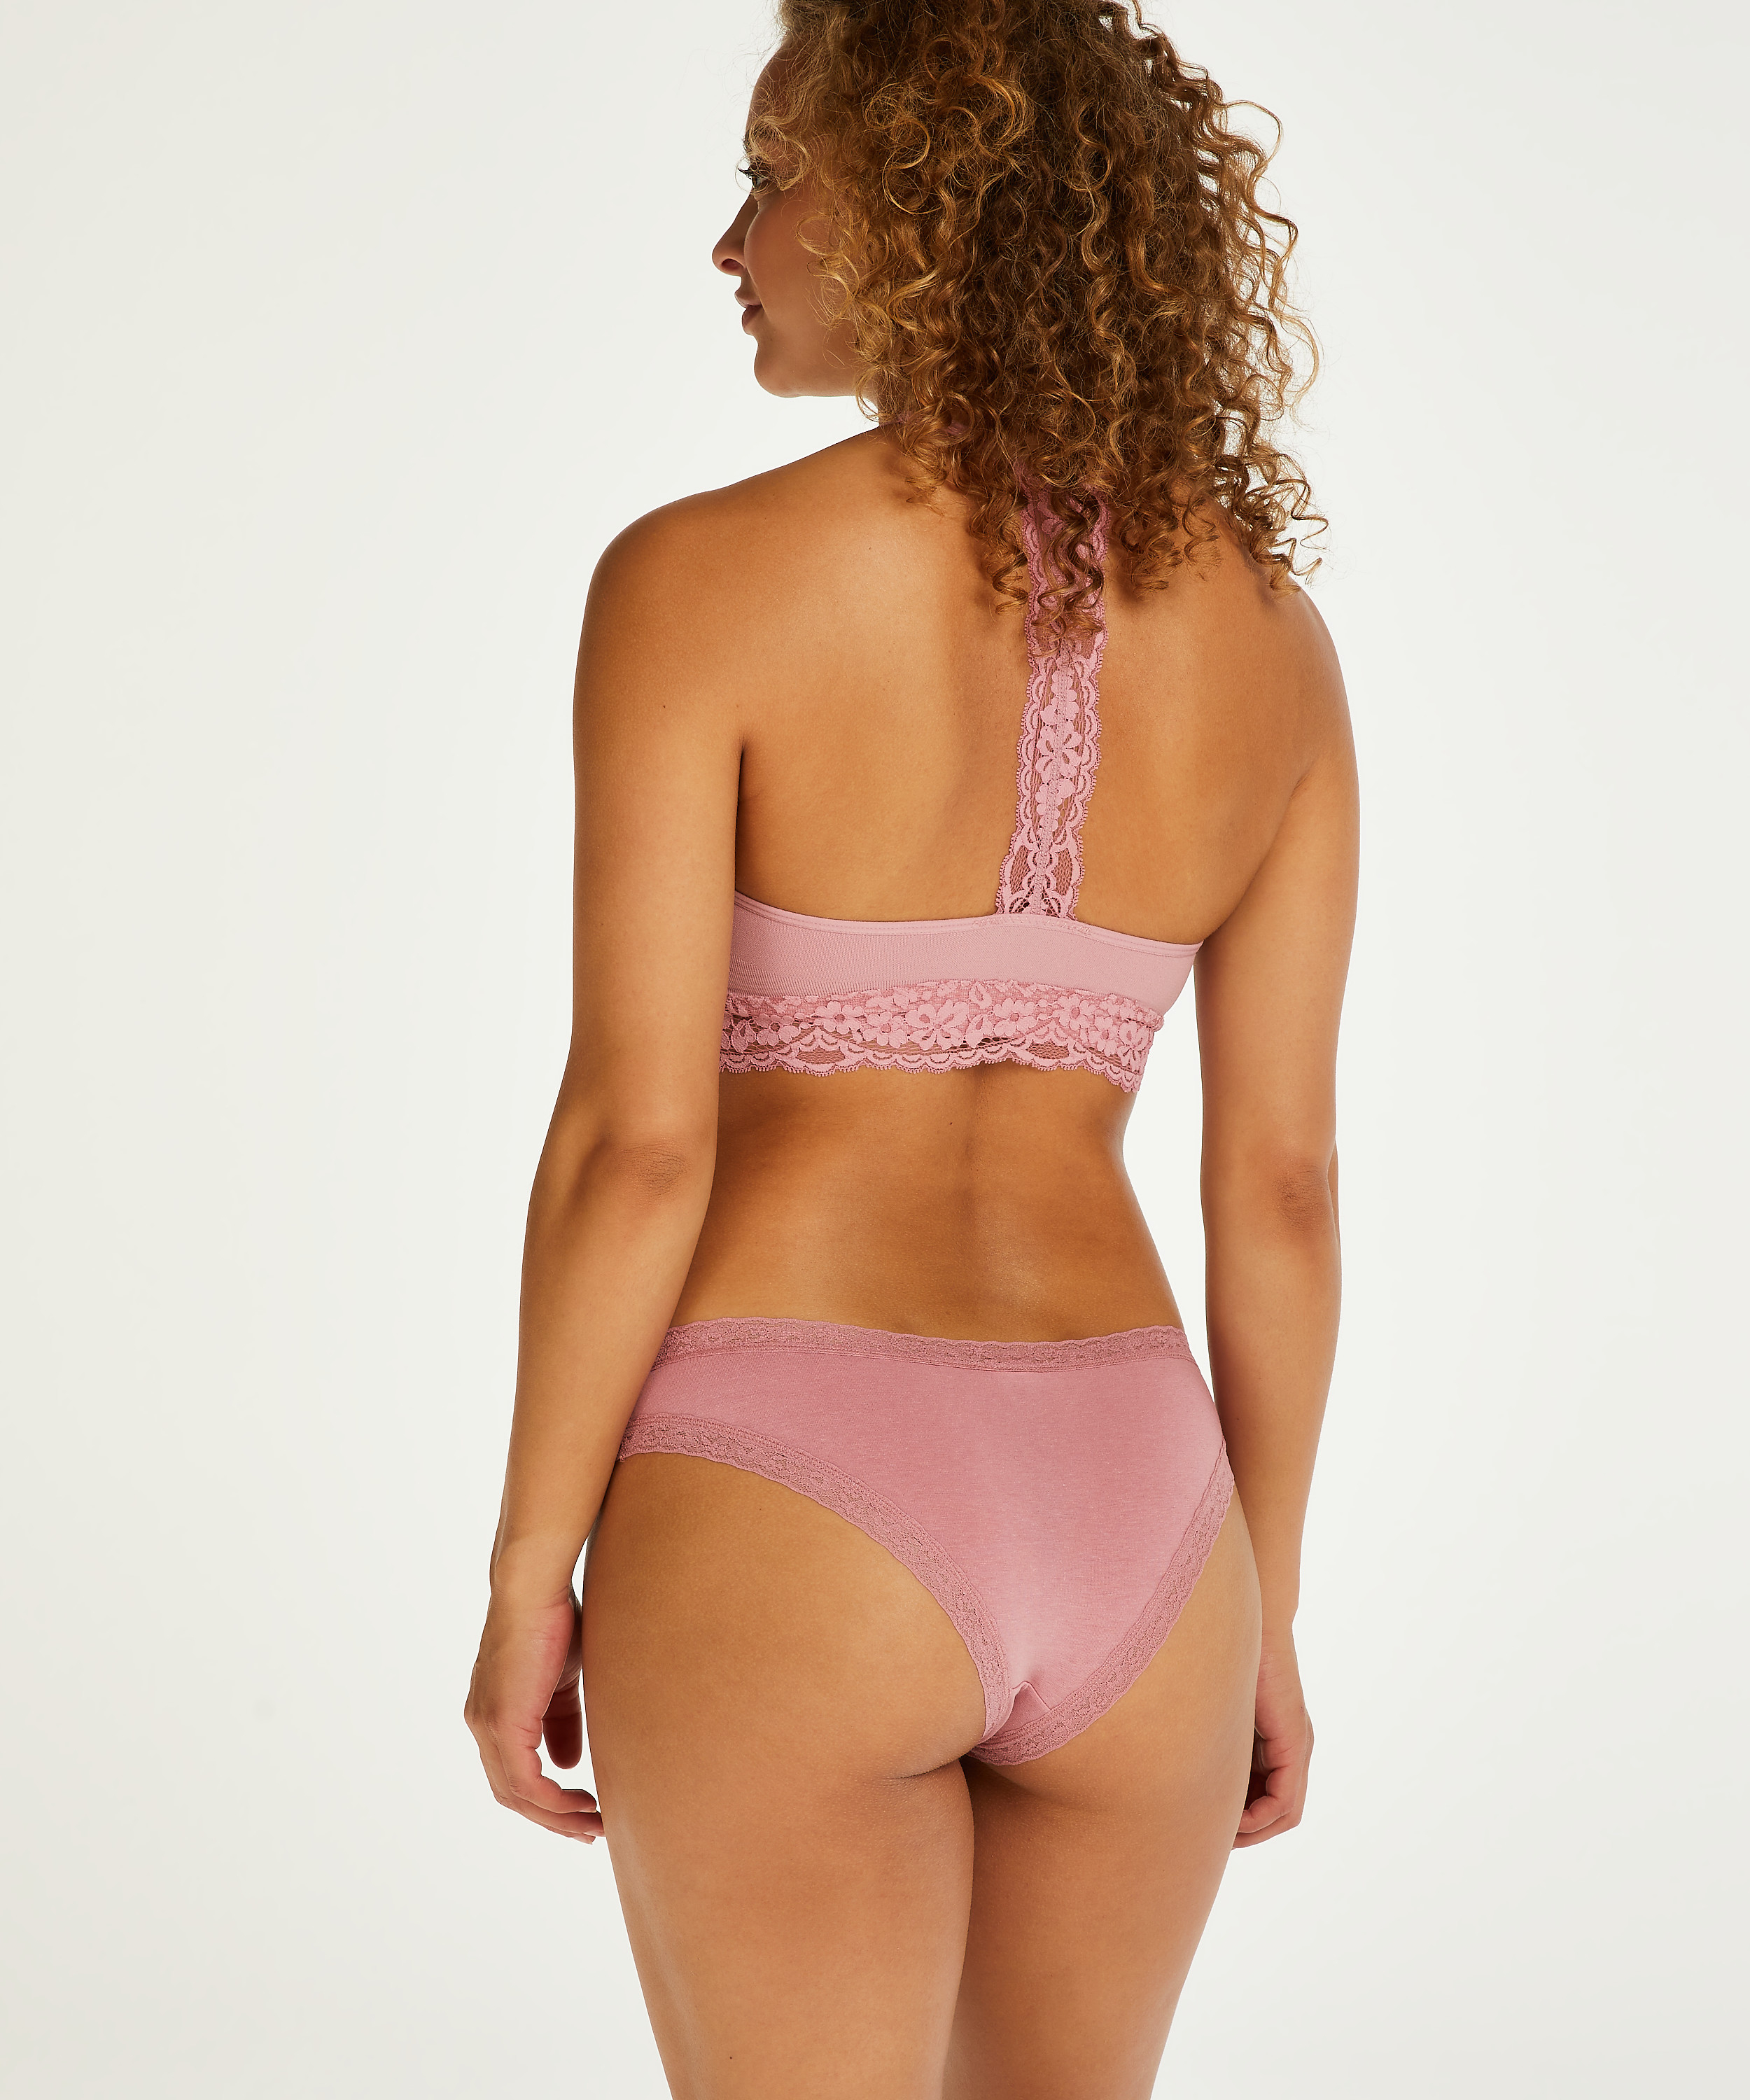 3-pack slips Seductrice, Wit, main